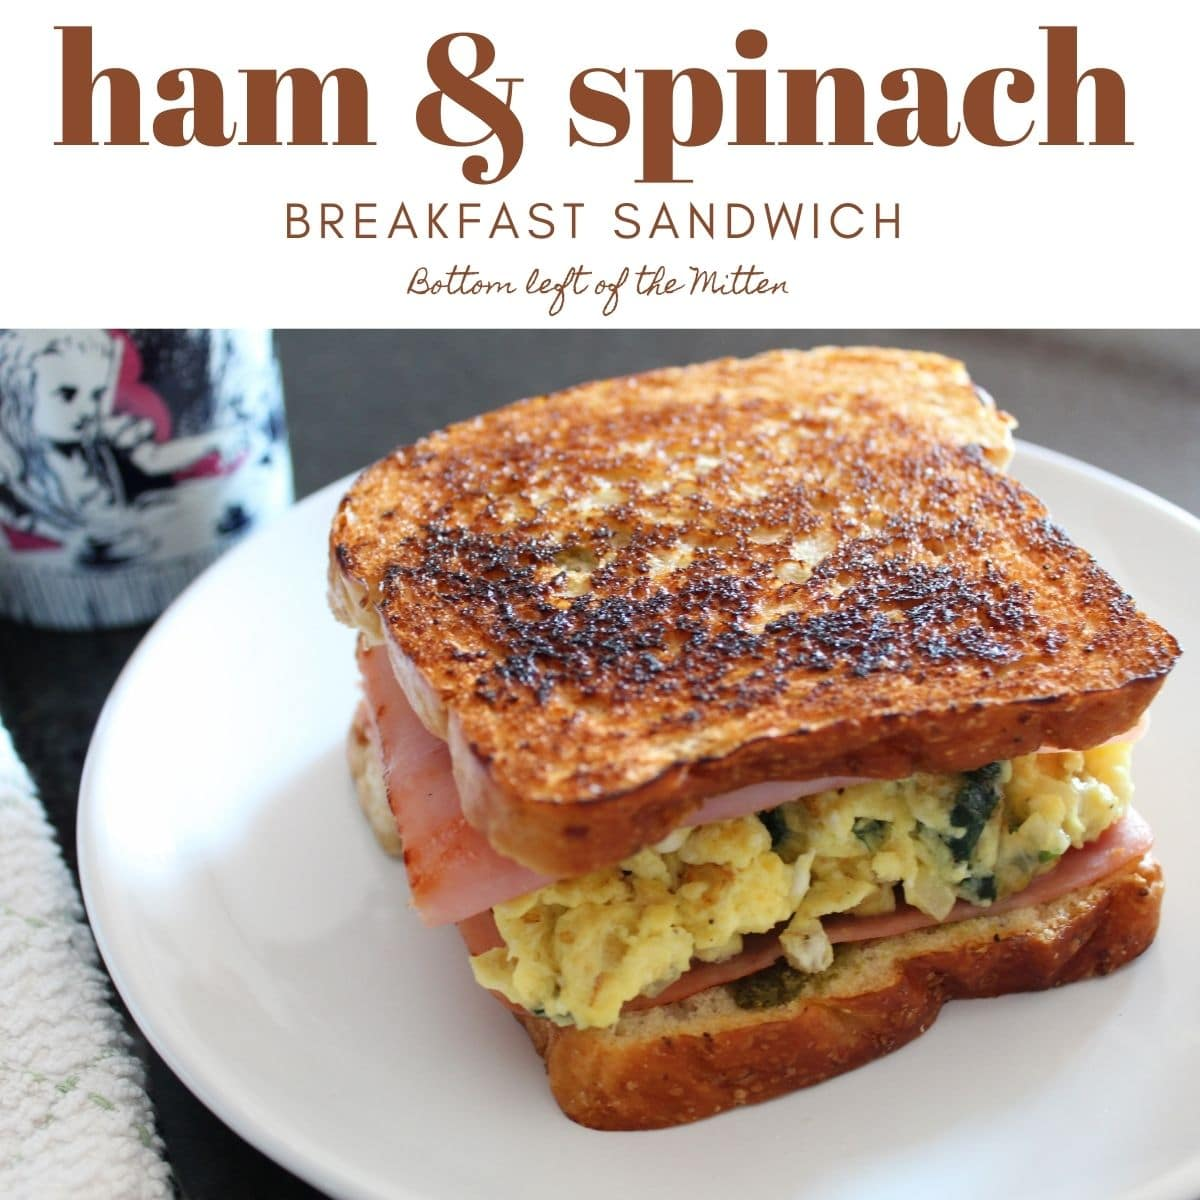 collage of image of Ham & Spinach Breakfast Sandwich with descriptive text